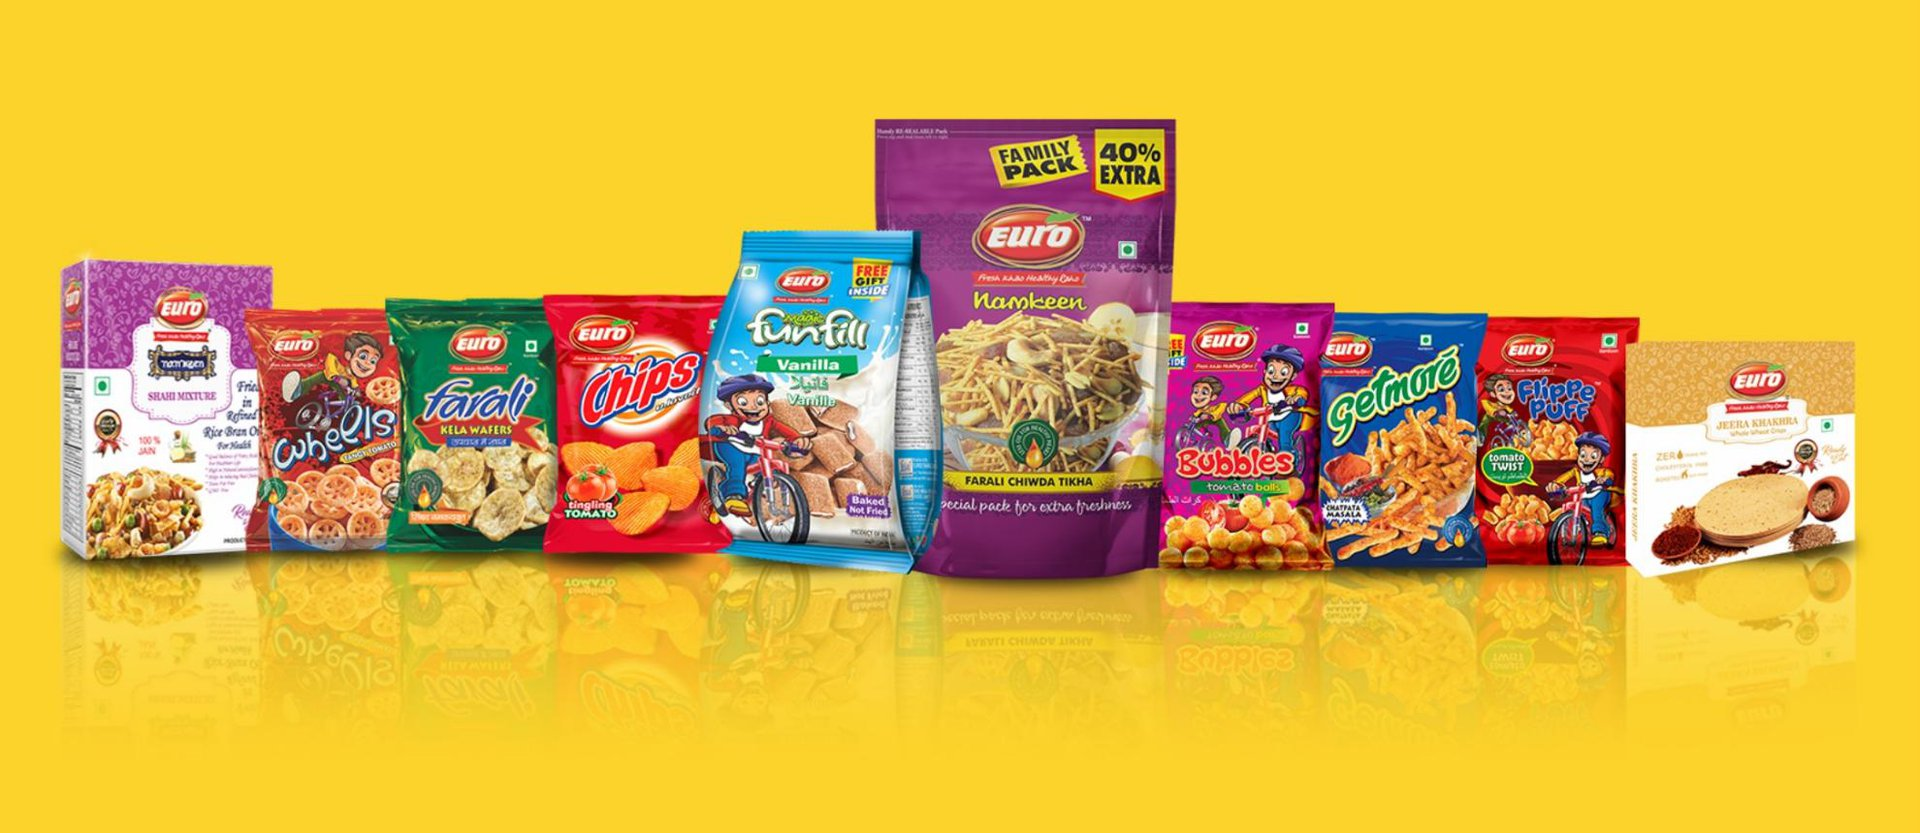 Chips and other products